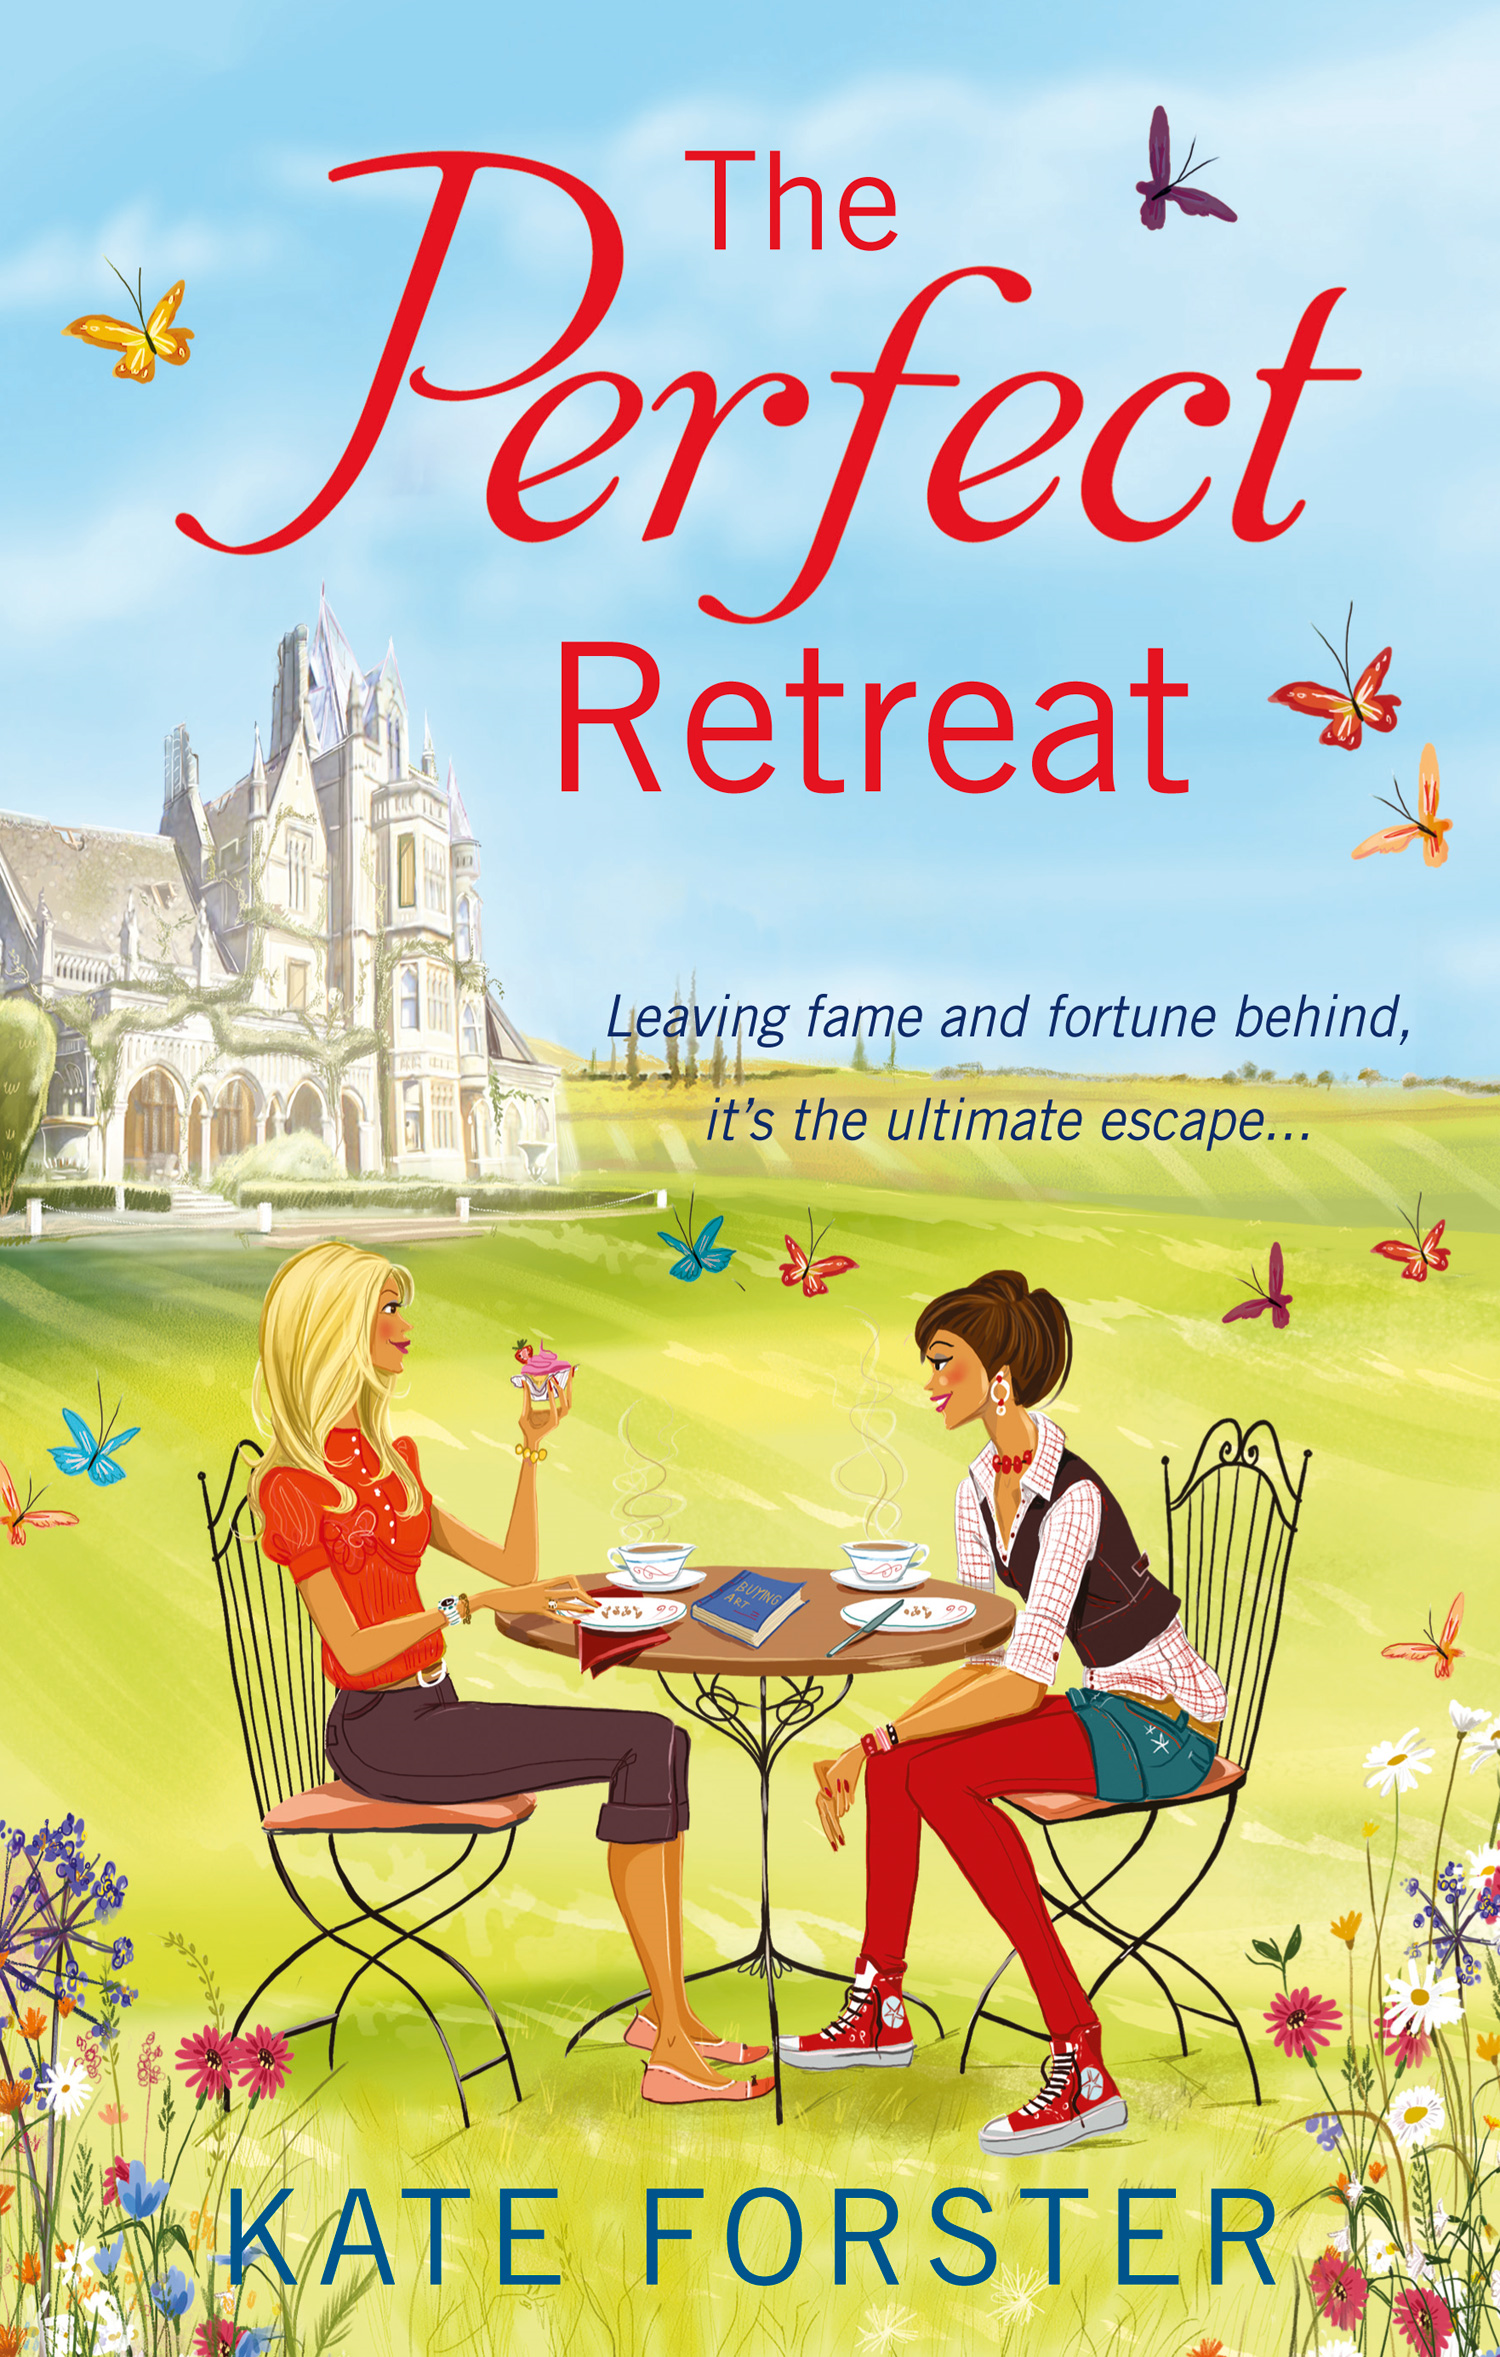 The Perfect Retreat